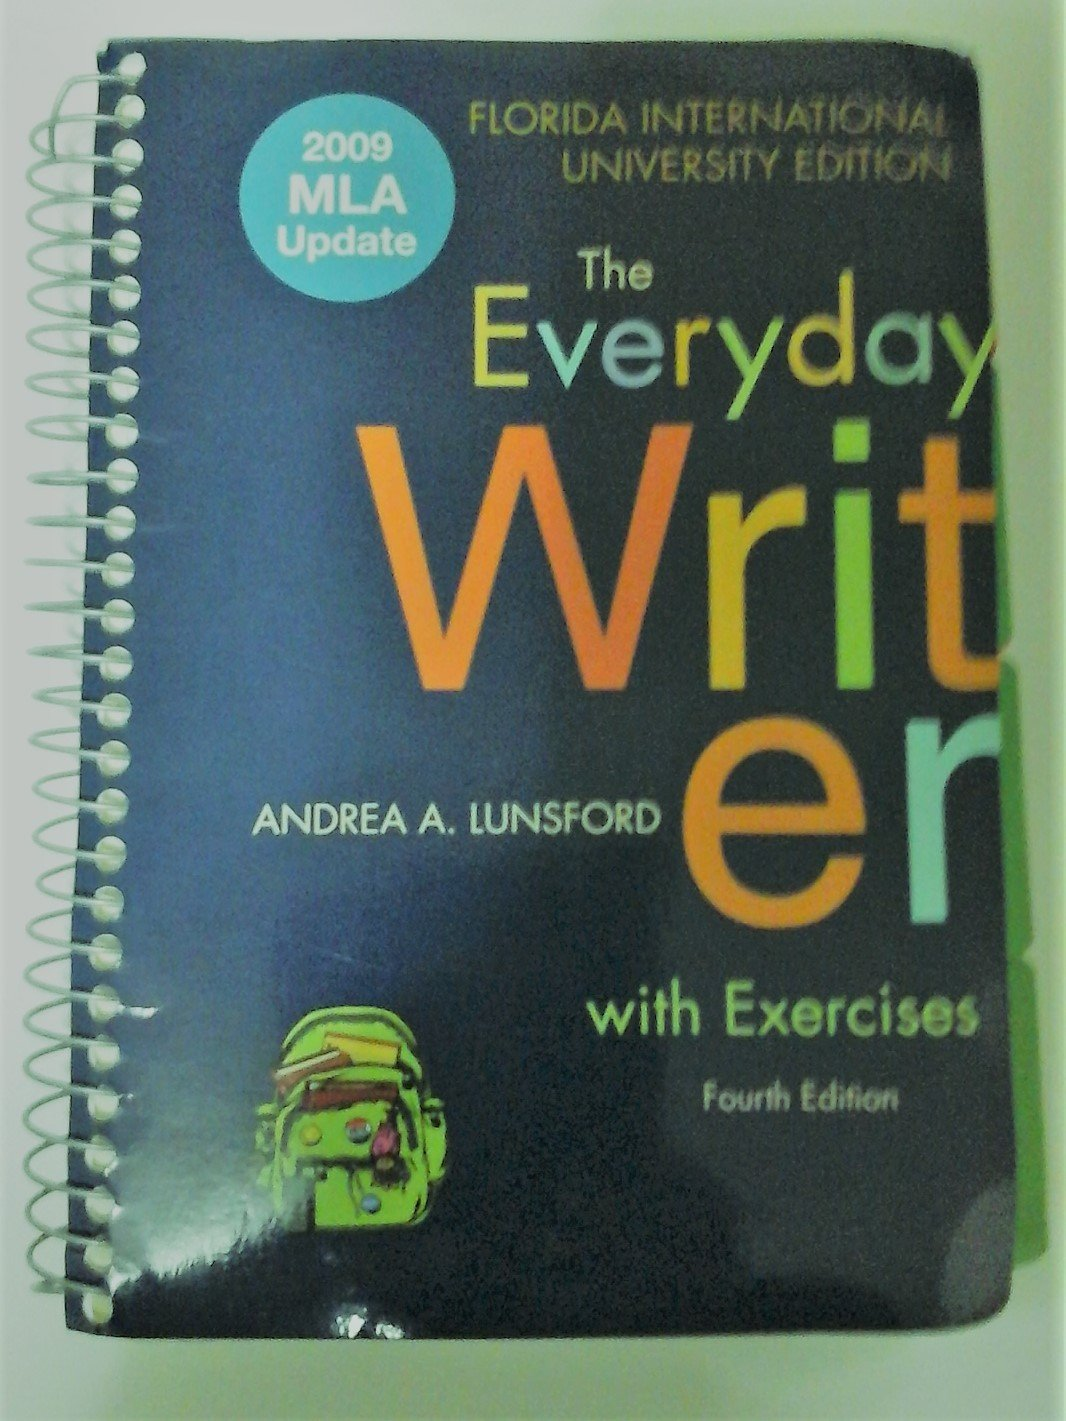 The Everyday Writer with Exercises Fourth Edition Florida International  University Edition: andrea lunsford: 9780312613211: Amazon.com: Books